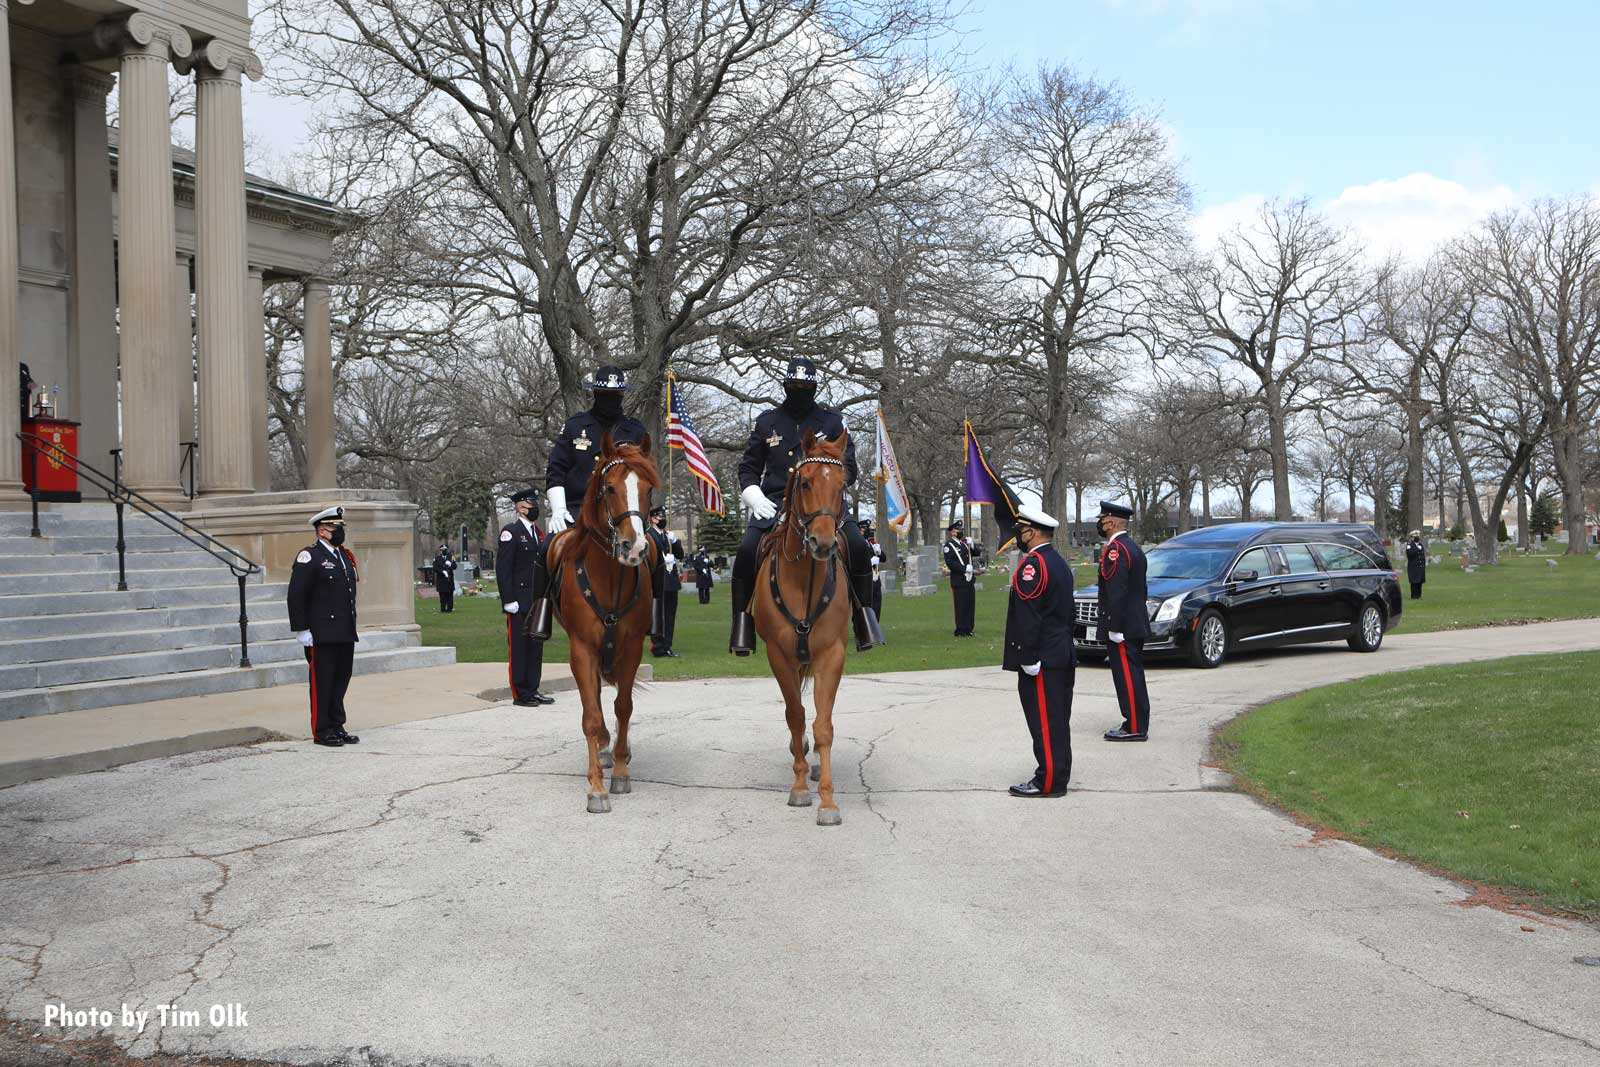 Firefighters mounted on horses at the funeral